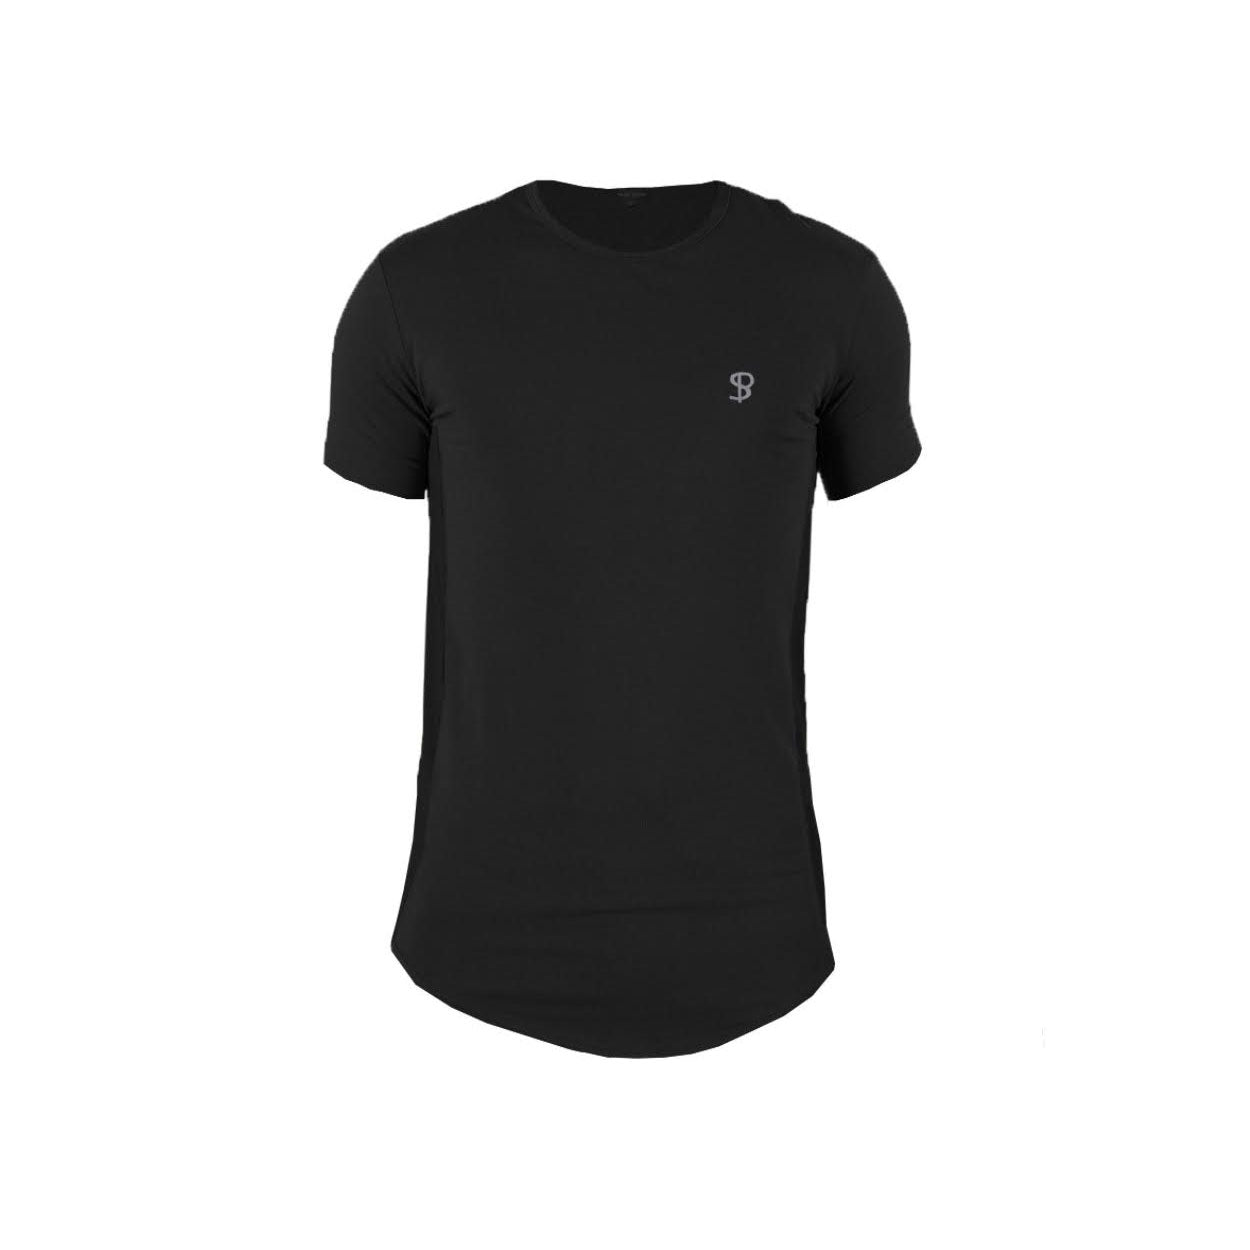 Sans Pareil Tech Side Panel Tee in Black